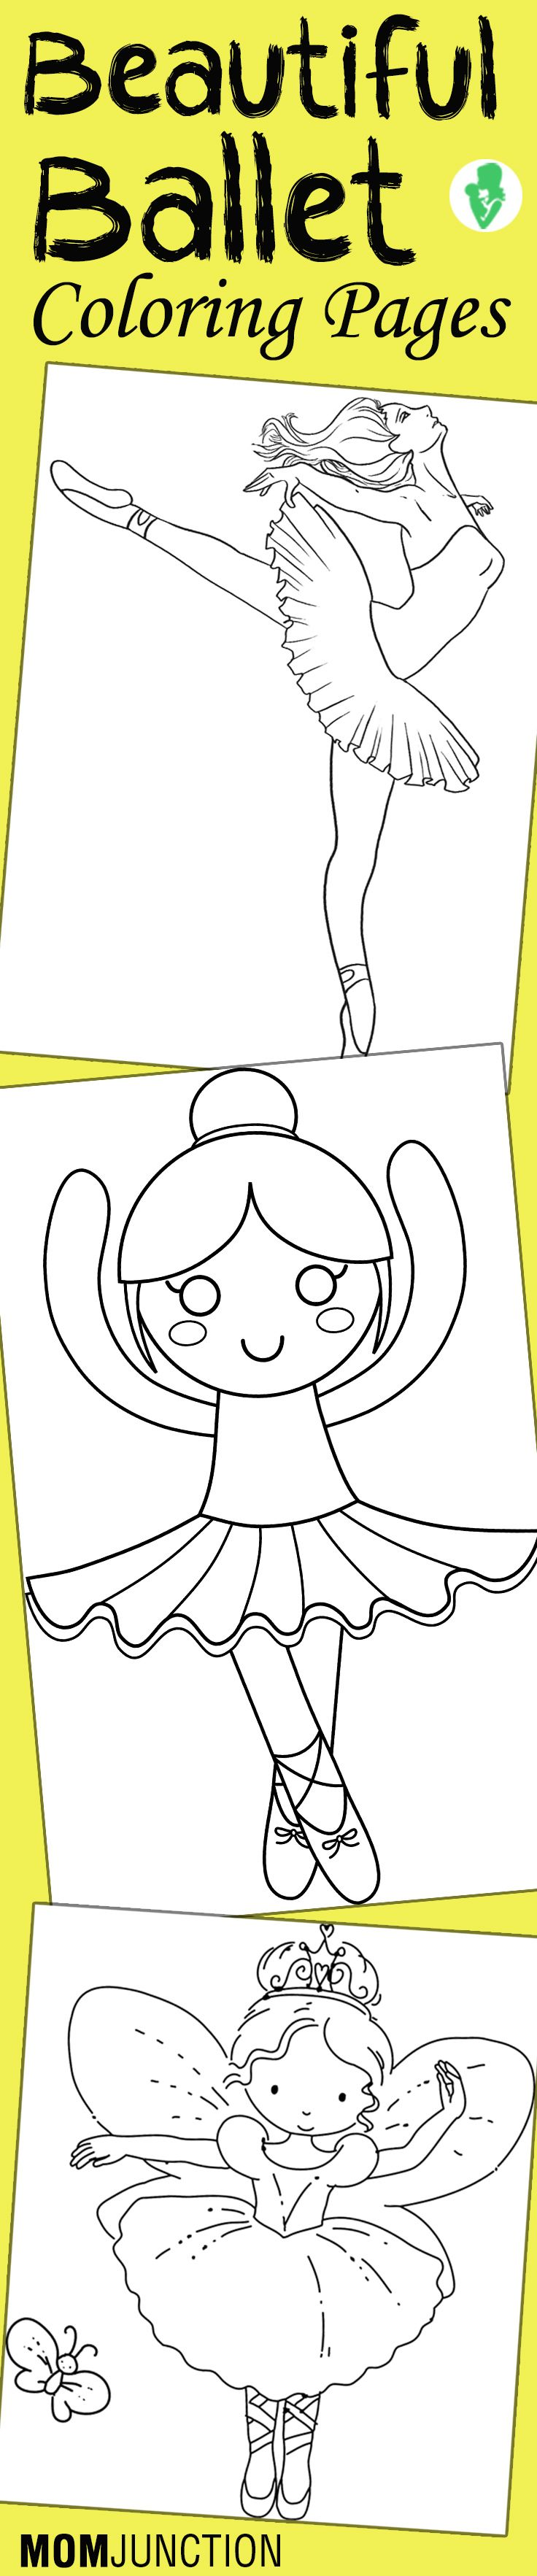 Best 25 Ballerina coloring pages ideas on Pinterest